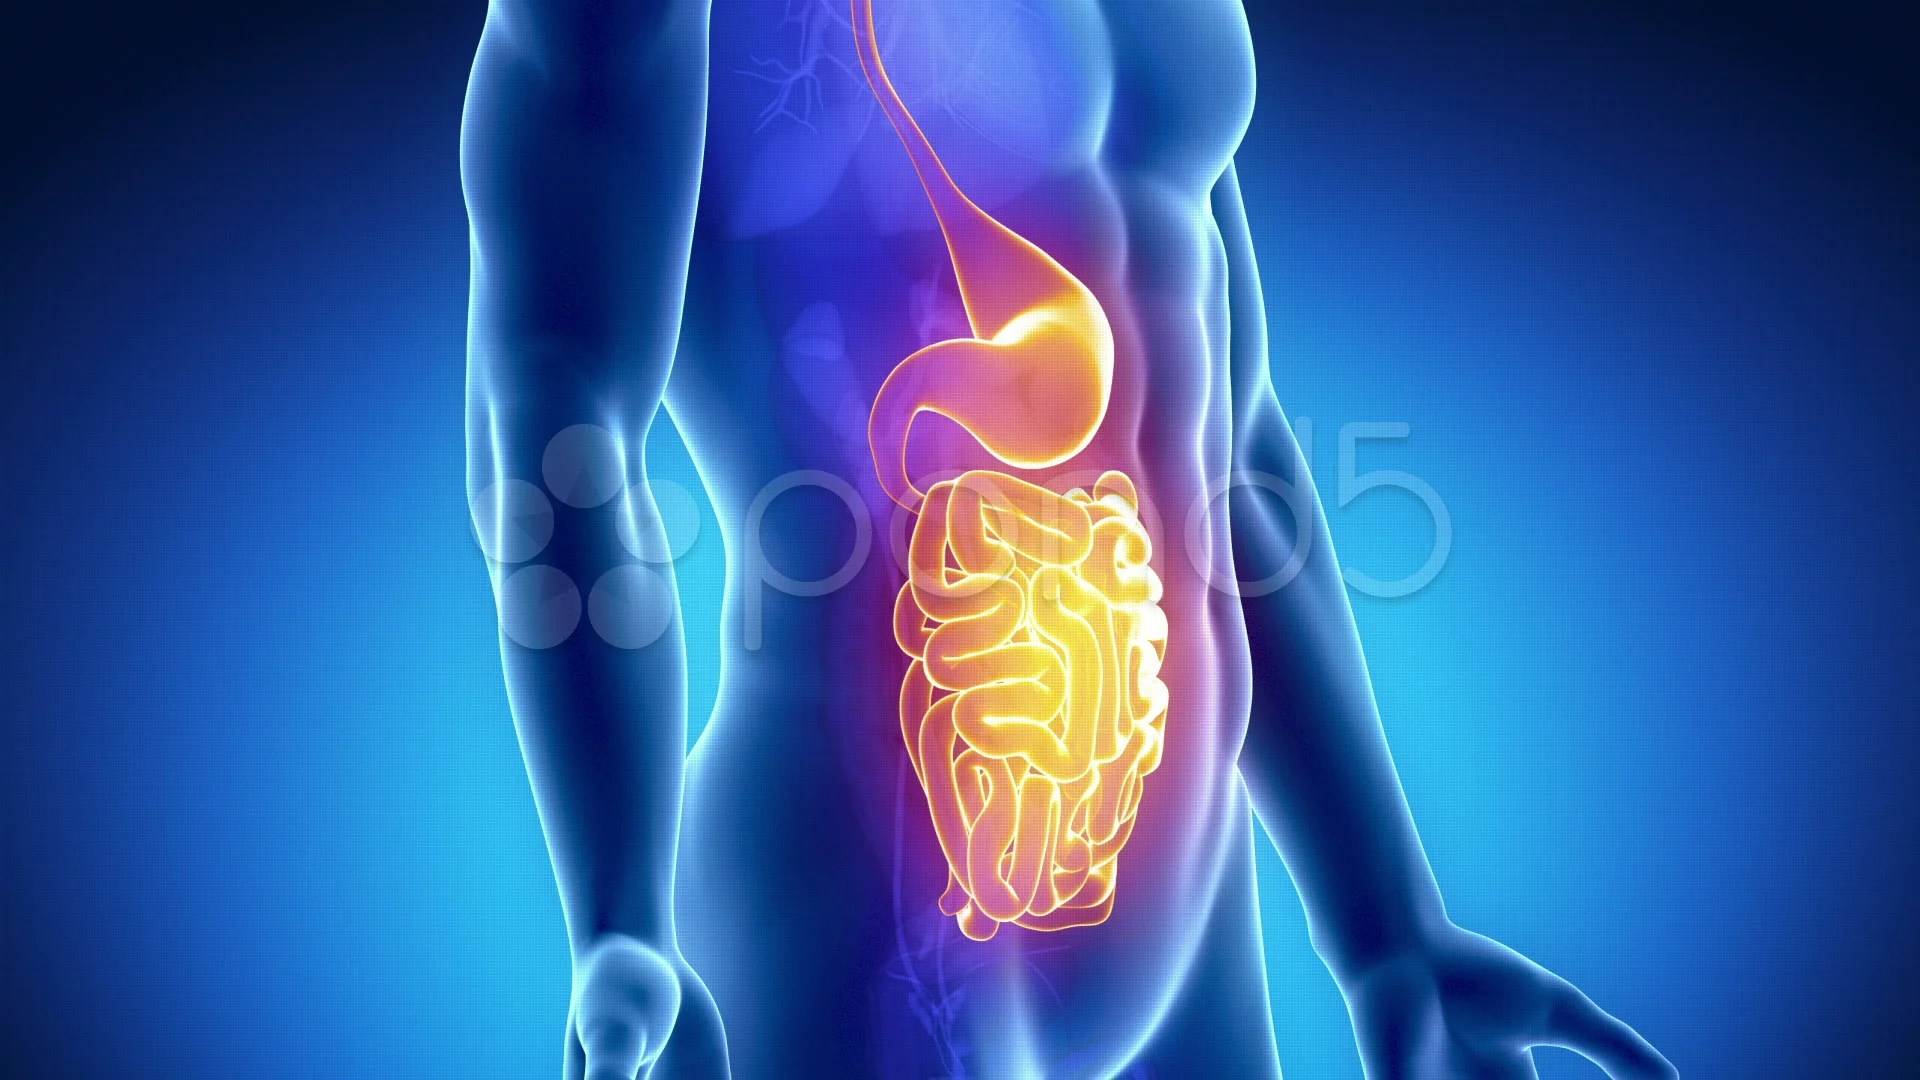 3d Virus Wallpaper Anatomy Of Human Digestive System Gust And Stomach Stock